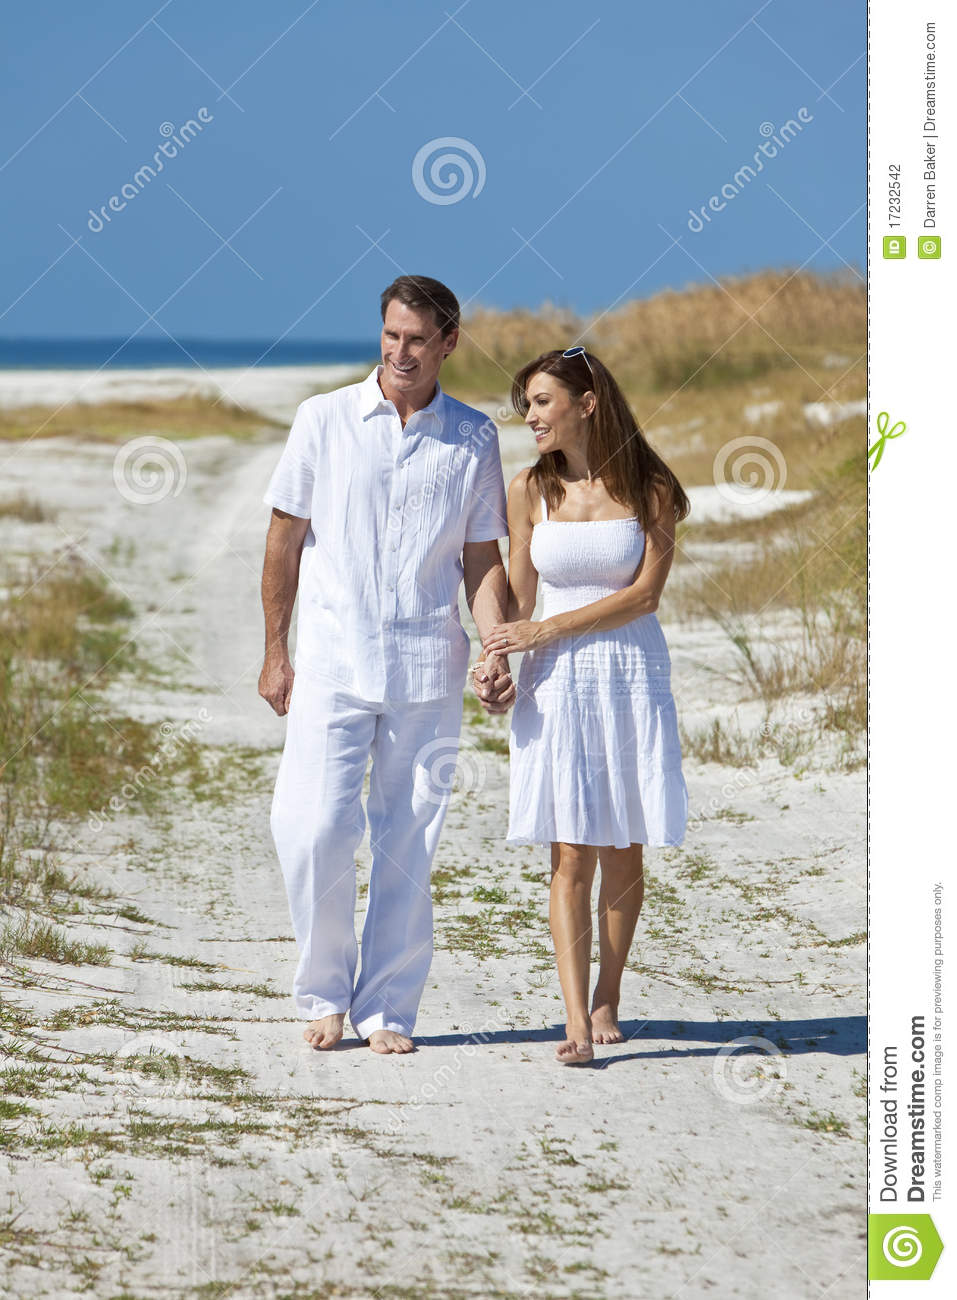 567d94514b87 Man and woman romantic couple in white clothes holding hands and walking on  a deserted tropical beach with bright clear blue sky